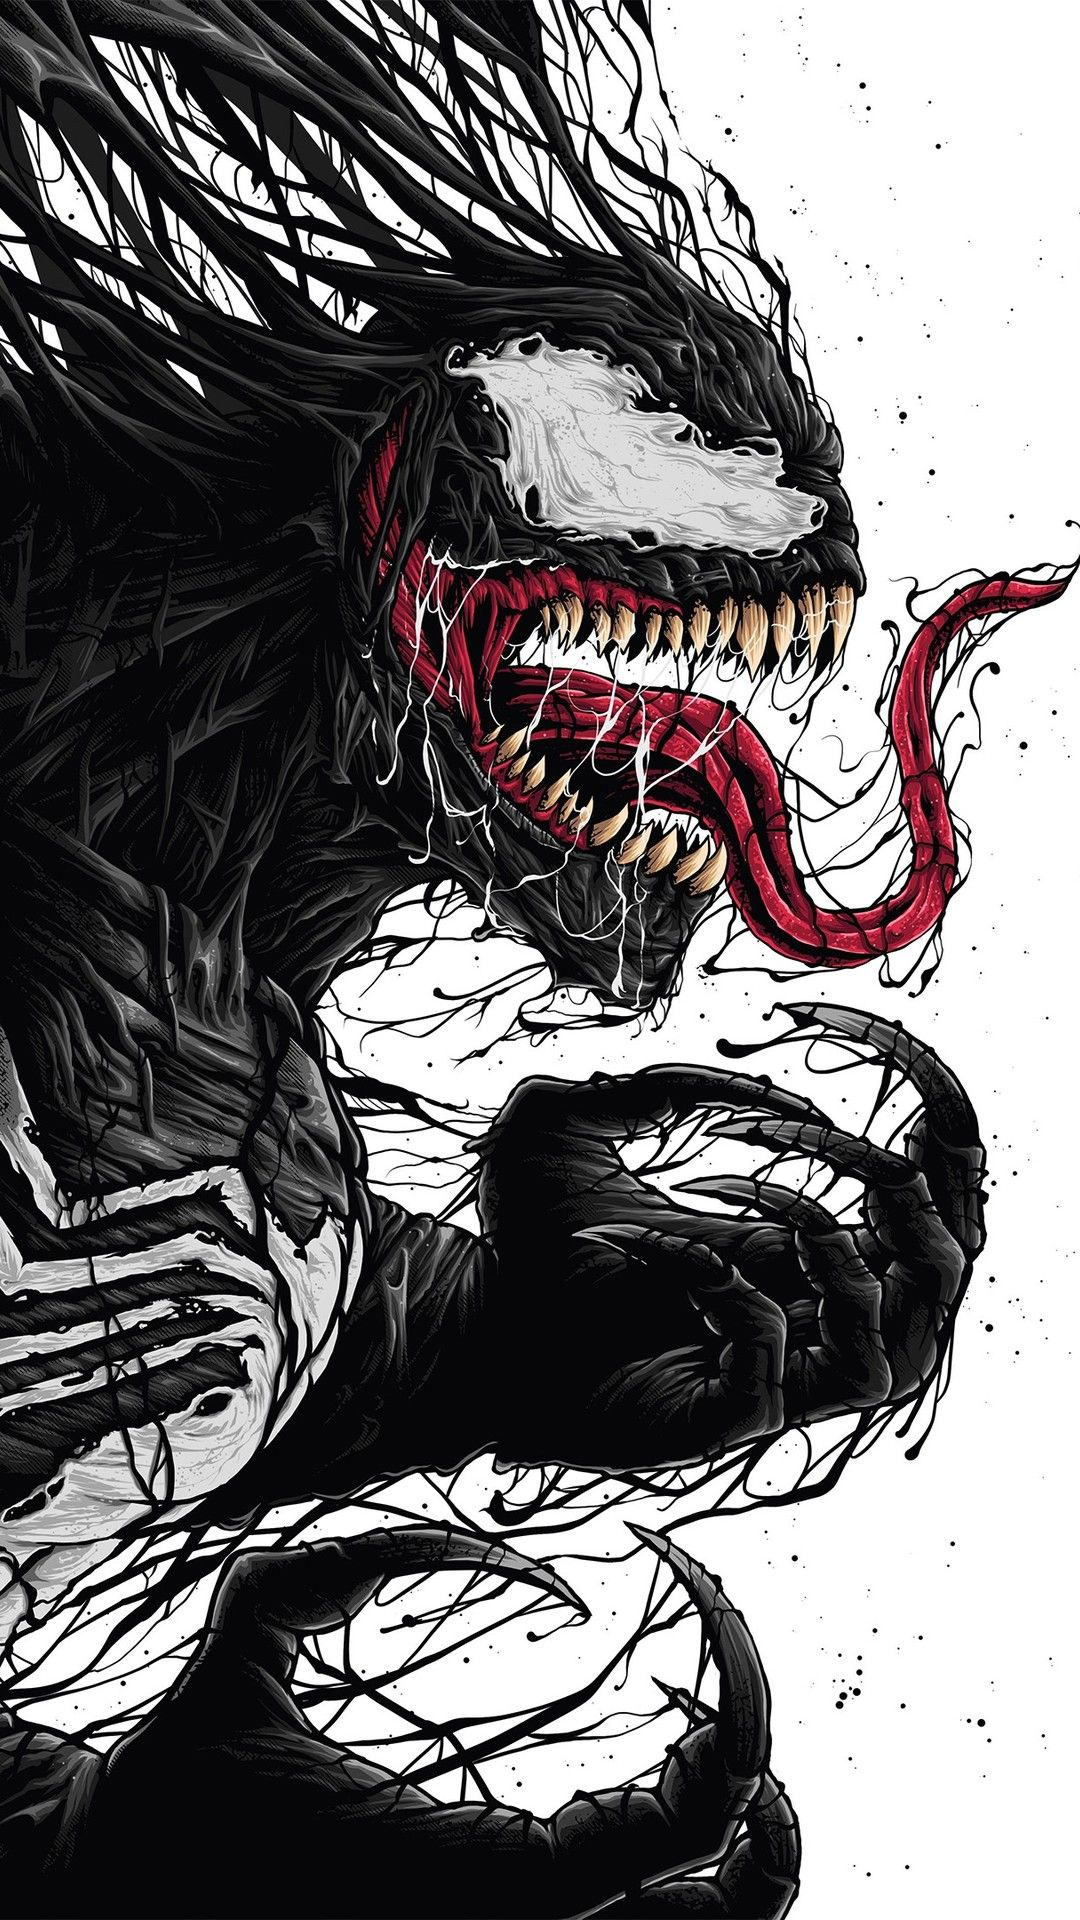 Carnage Venom Iphone Wallpapers Top Free Carnage Venom Iphone